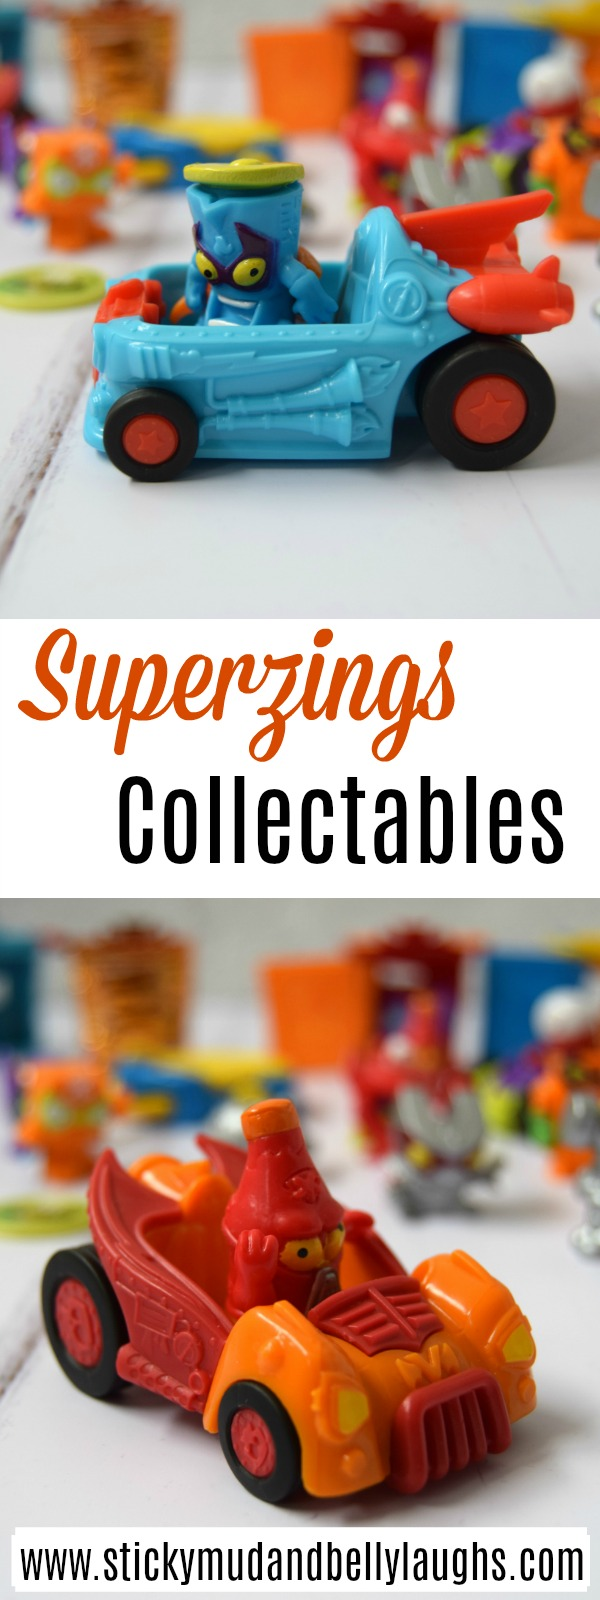 Superzings collectables from Magicbox. #toyreview #toys #kidscollectables